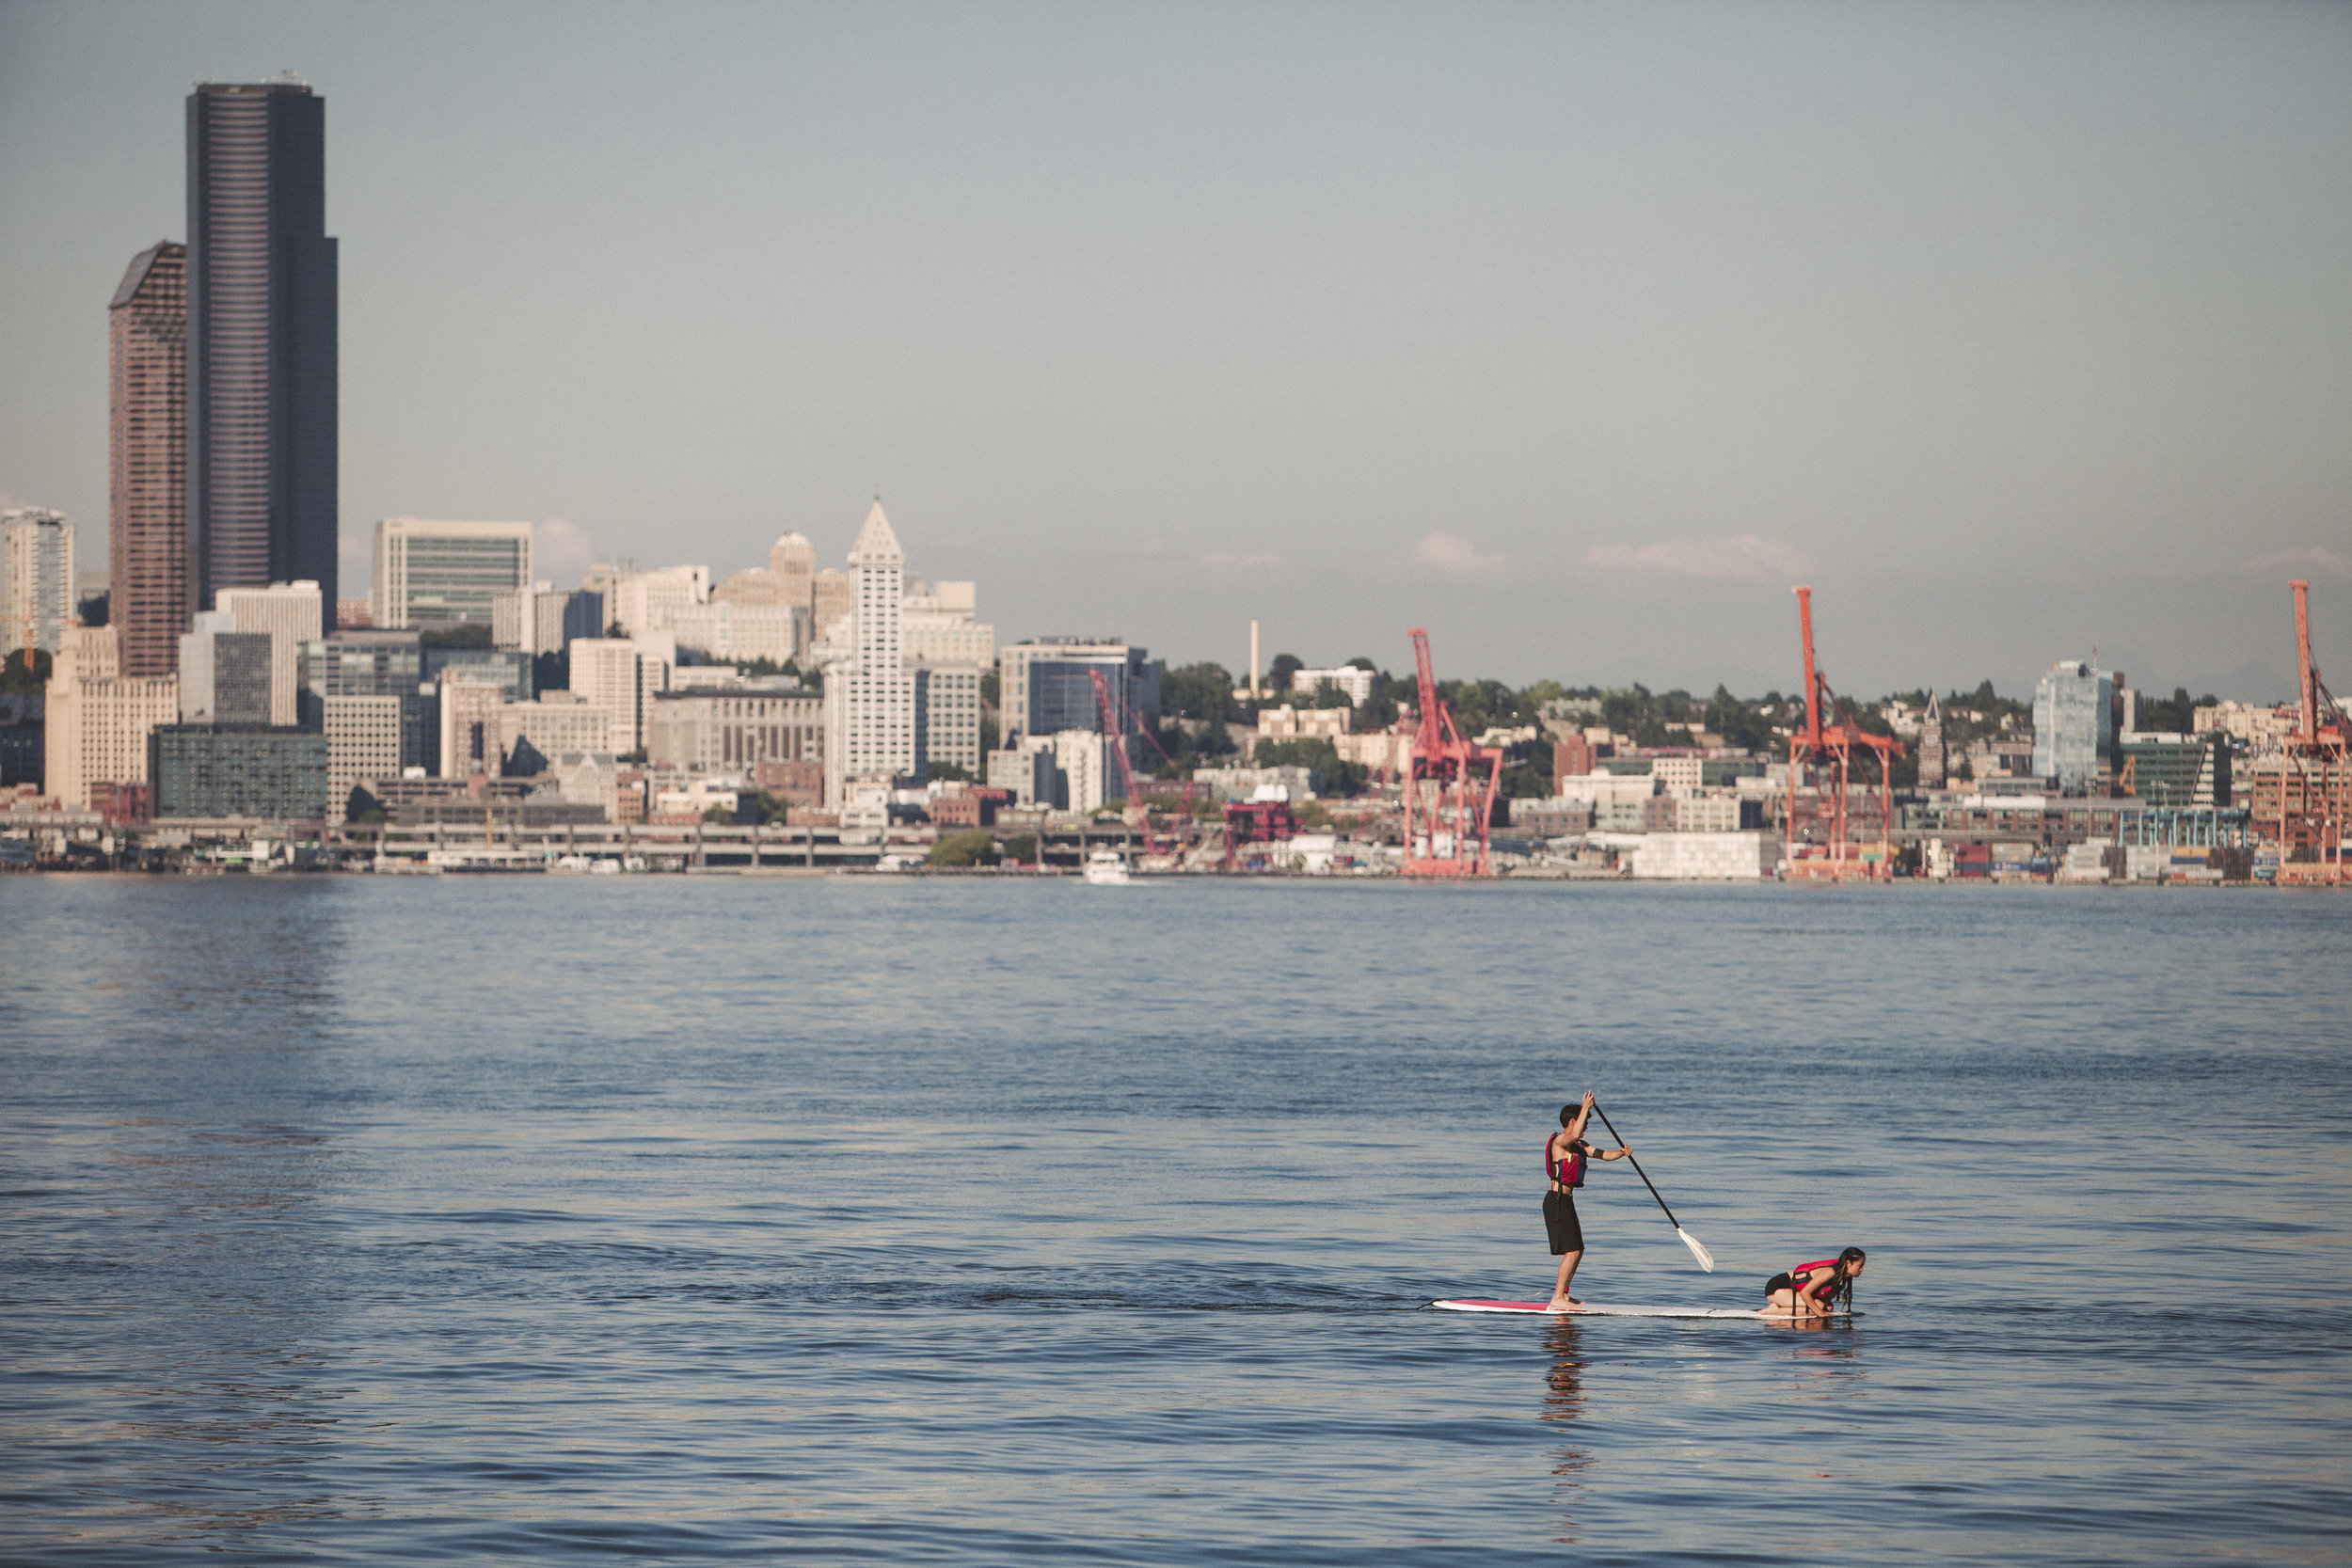 Seattle skyline from West Seattle, where Alki Beach offers recreation for all. Photo by Jeff Marsh.